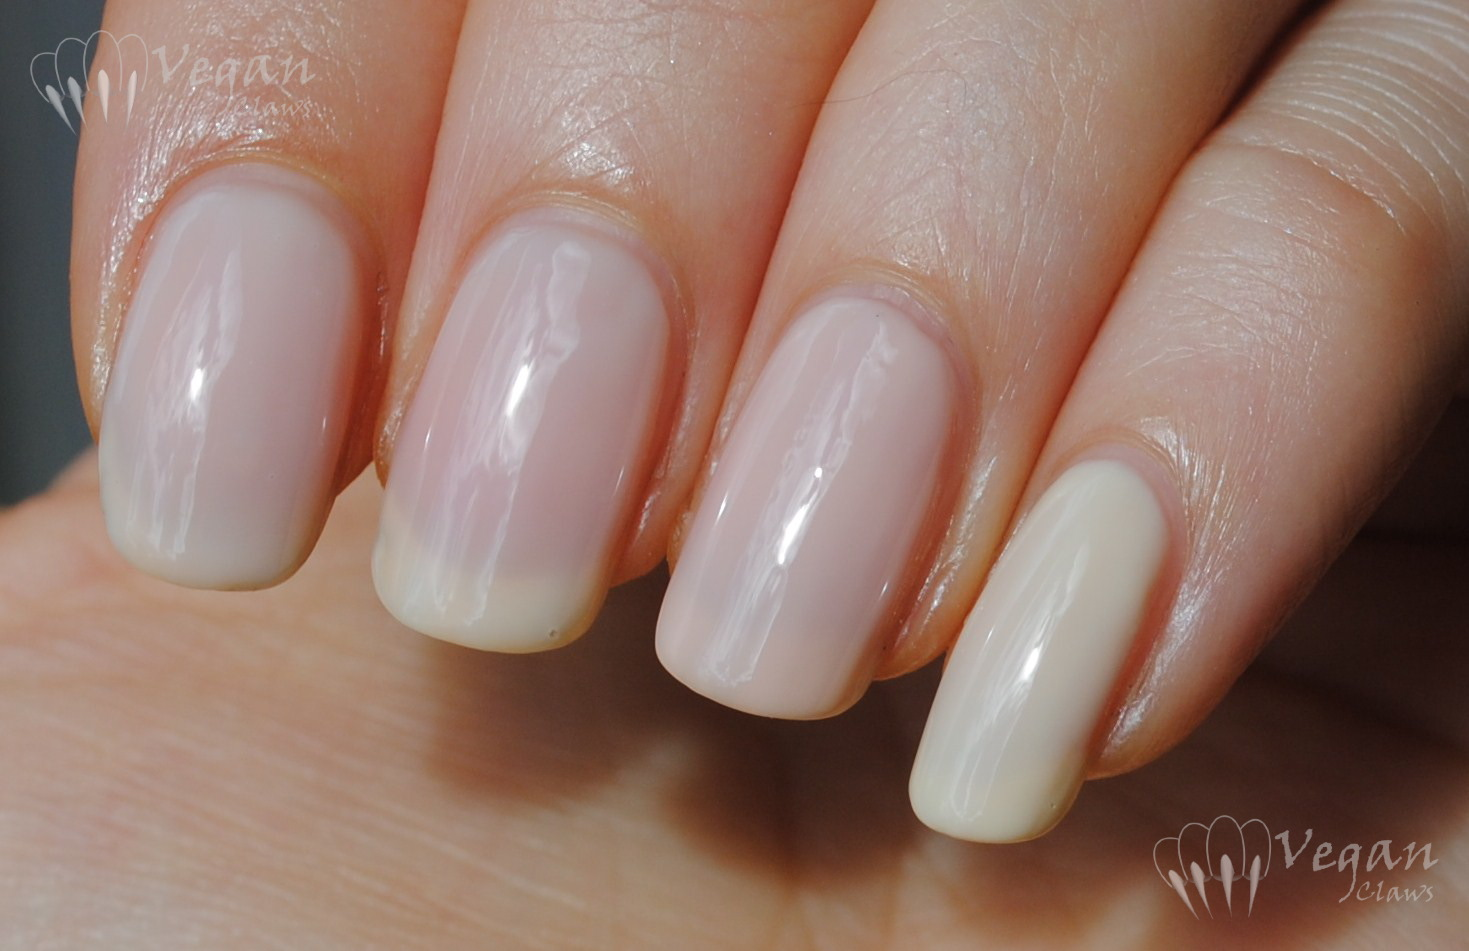 No Miss Casselberry Cream and comparisons | Vegan Claws